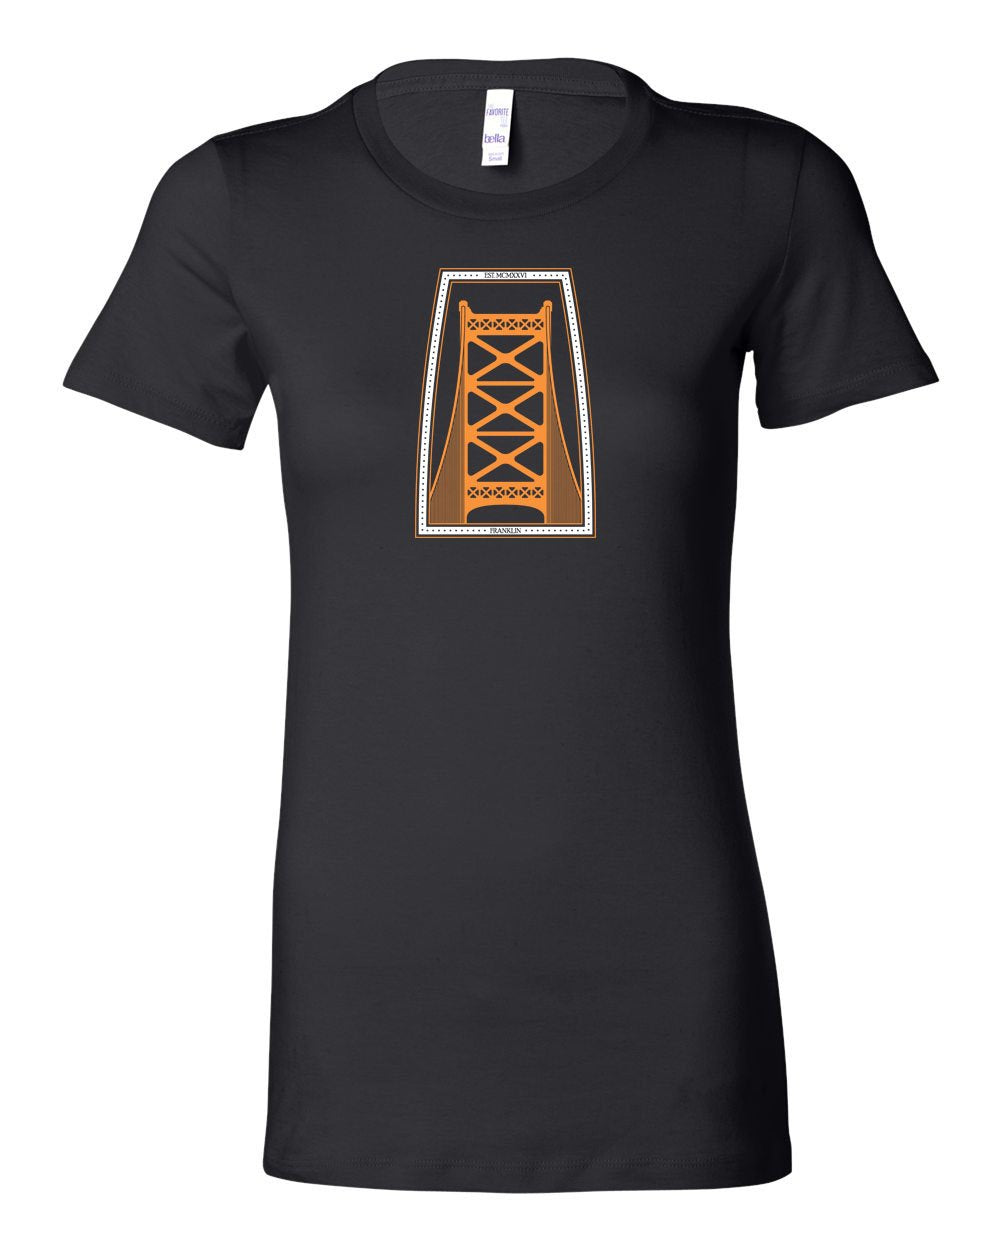 Ben Franklin Bridge Hockey LADIES Junior-Fit T-Shirt